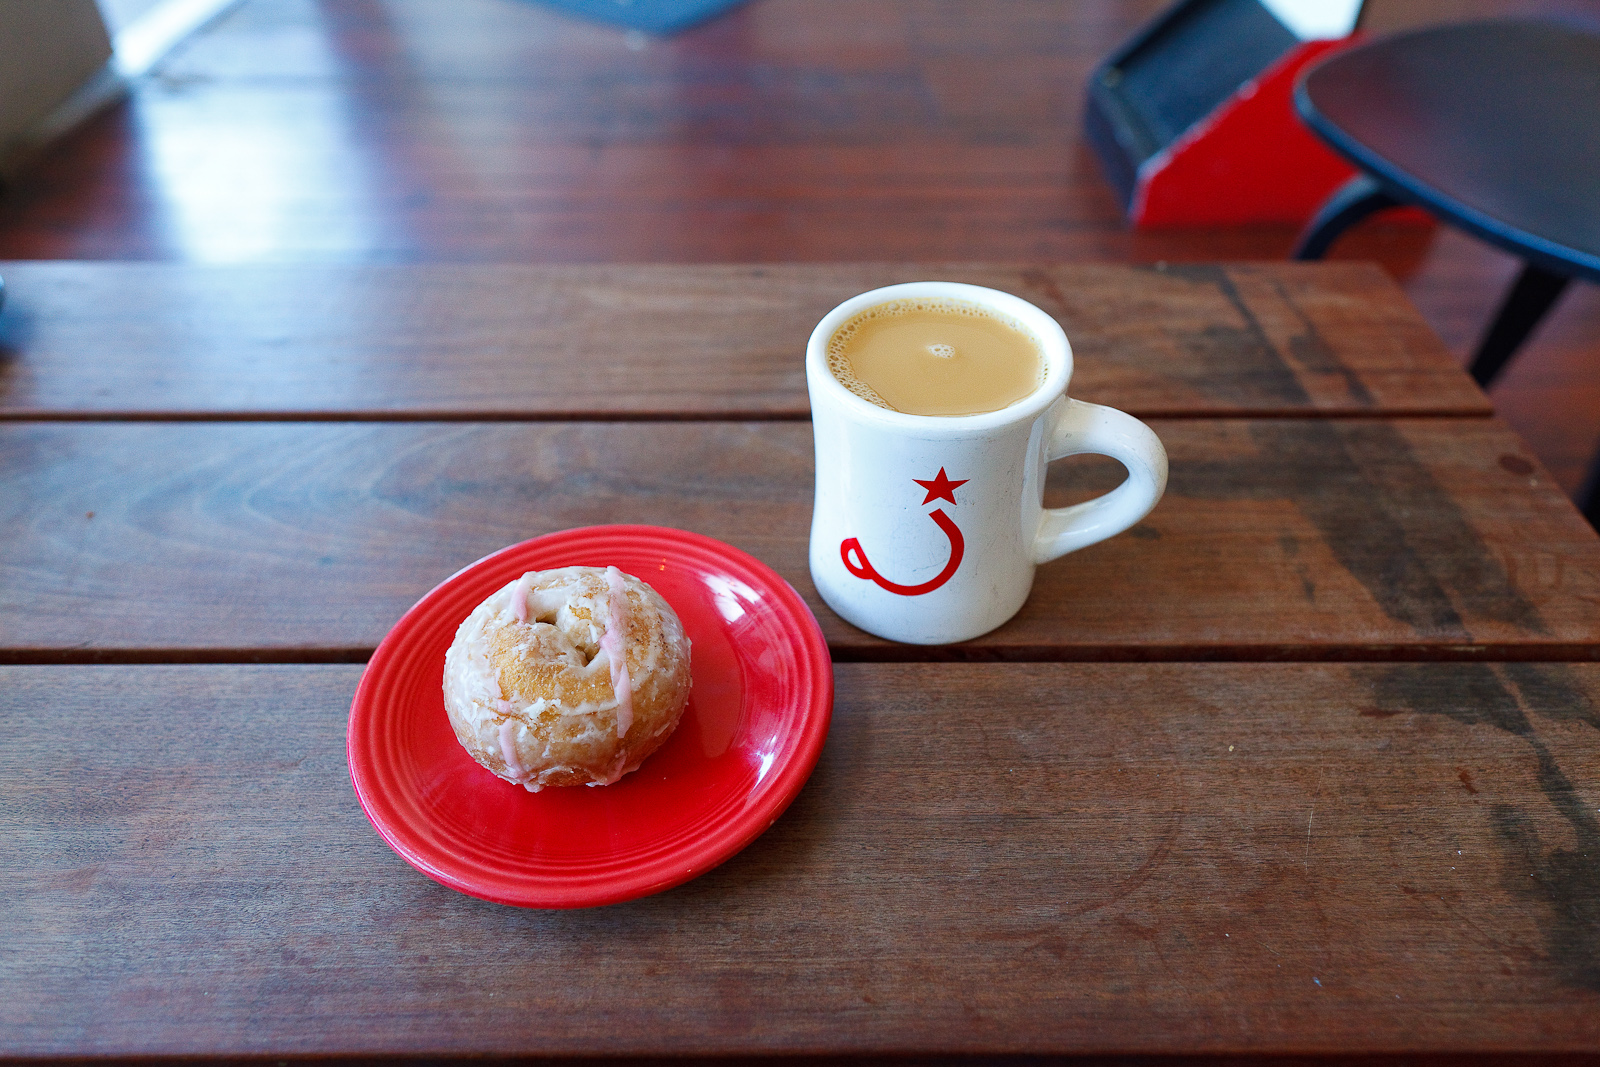 Pour over coffee and a glaze donut from People's Donuts